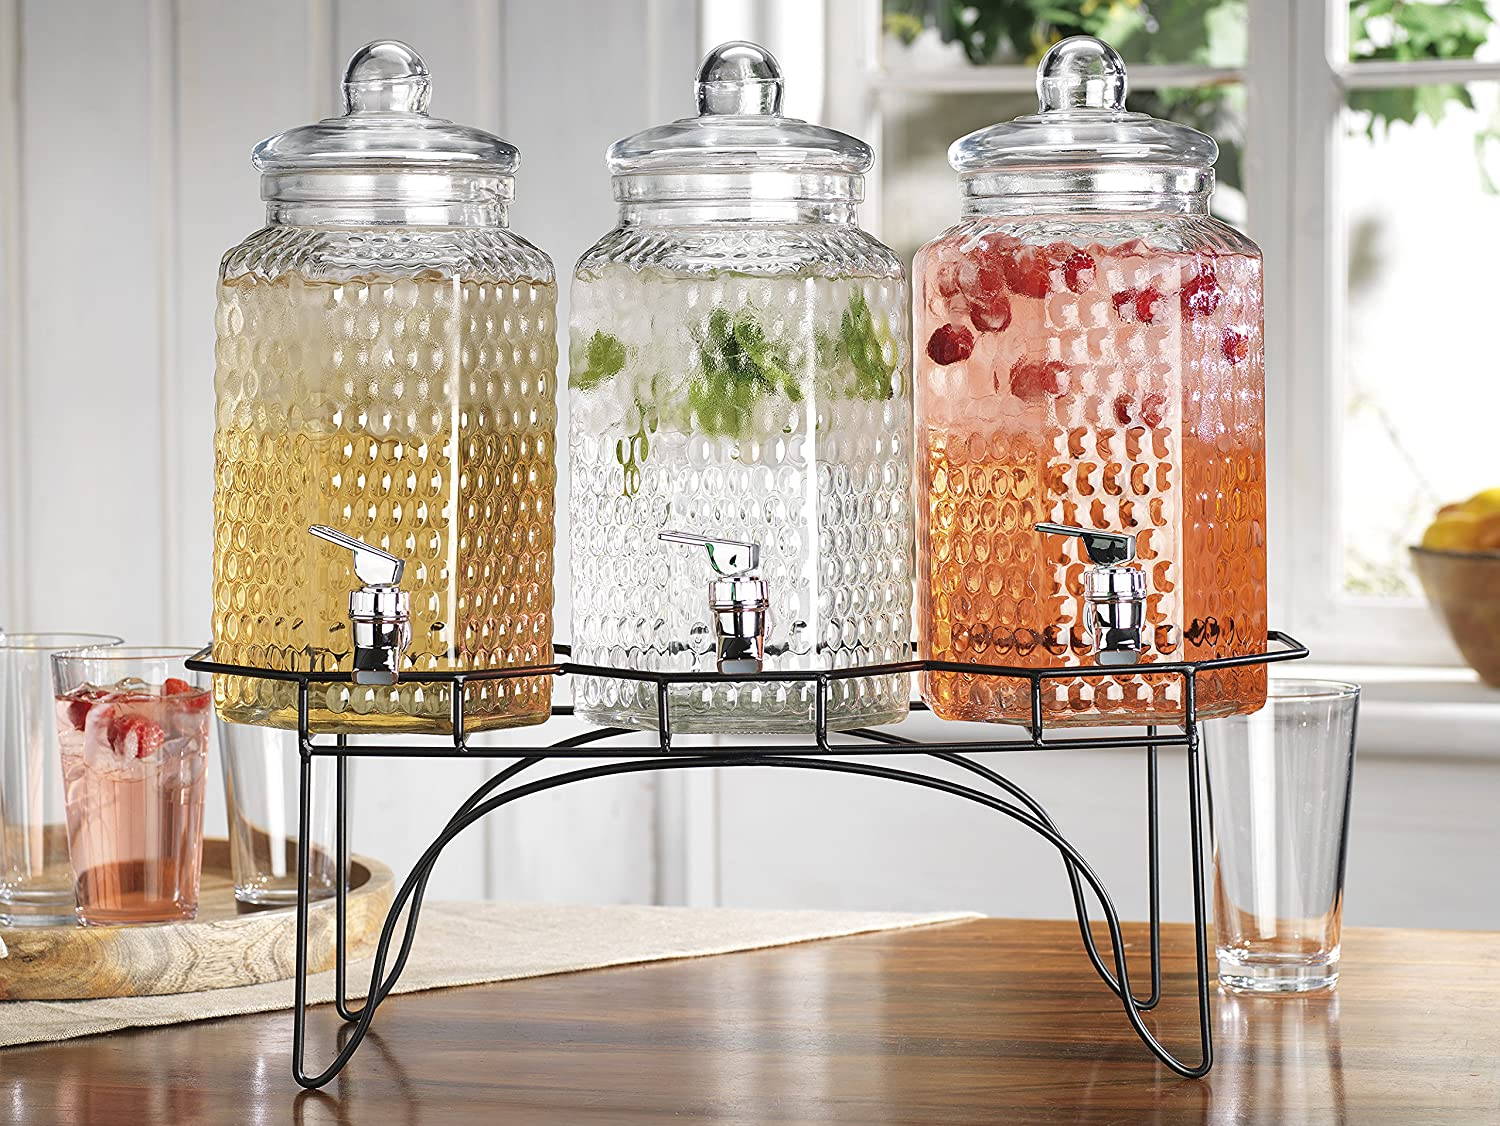 Elegant Home (3) 1 Gallon Each Quality Ice Cold Clear Glass Jug Beverage Dispensers Hermetic Seal Metal Display EH 3592